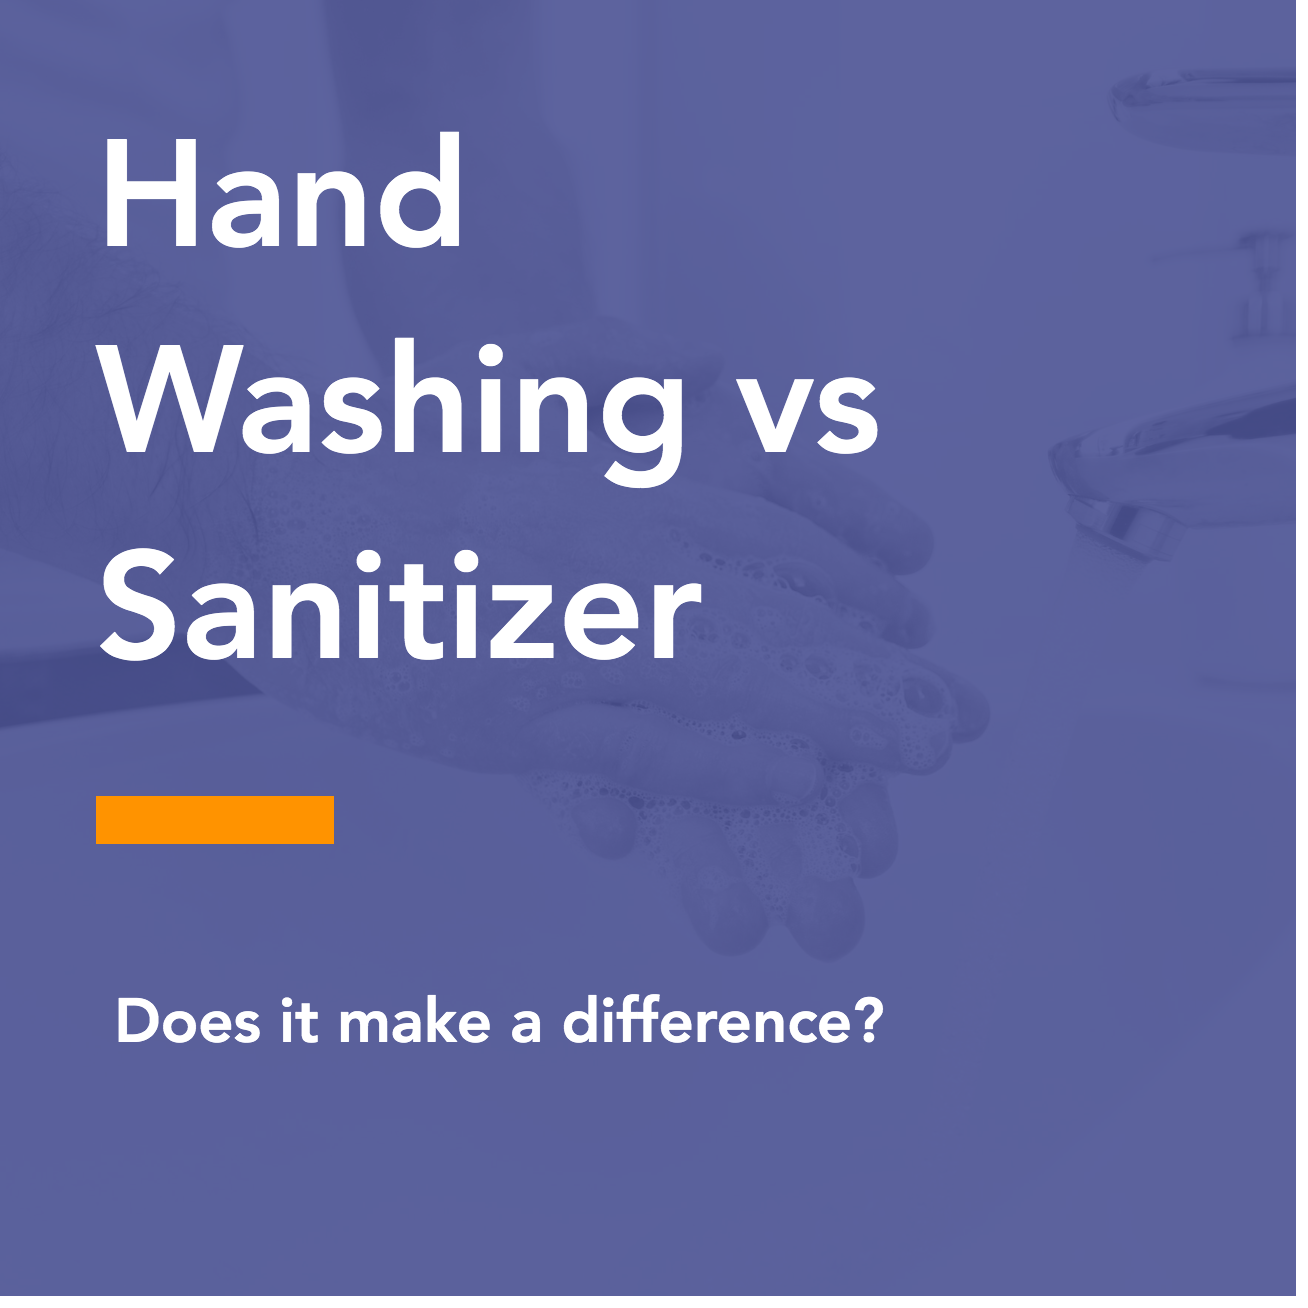 Hand Washing vs Sanitizer